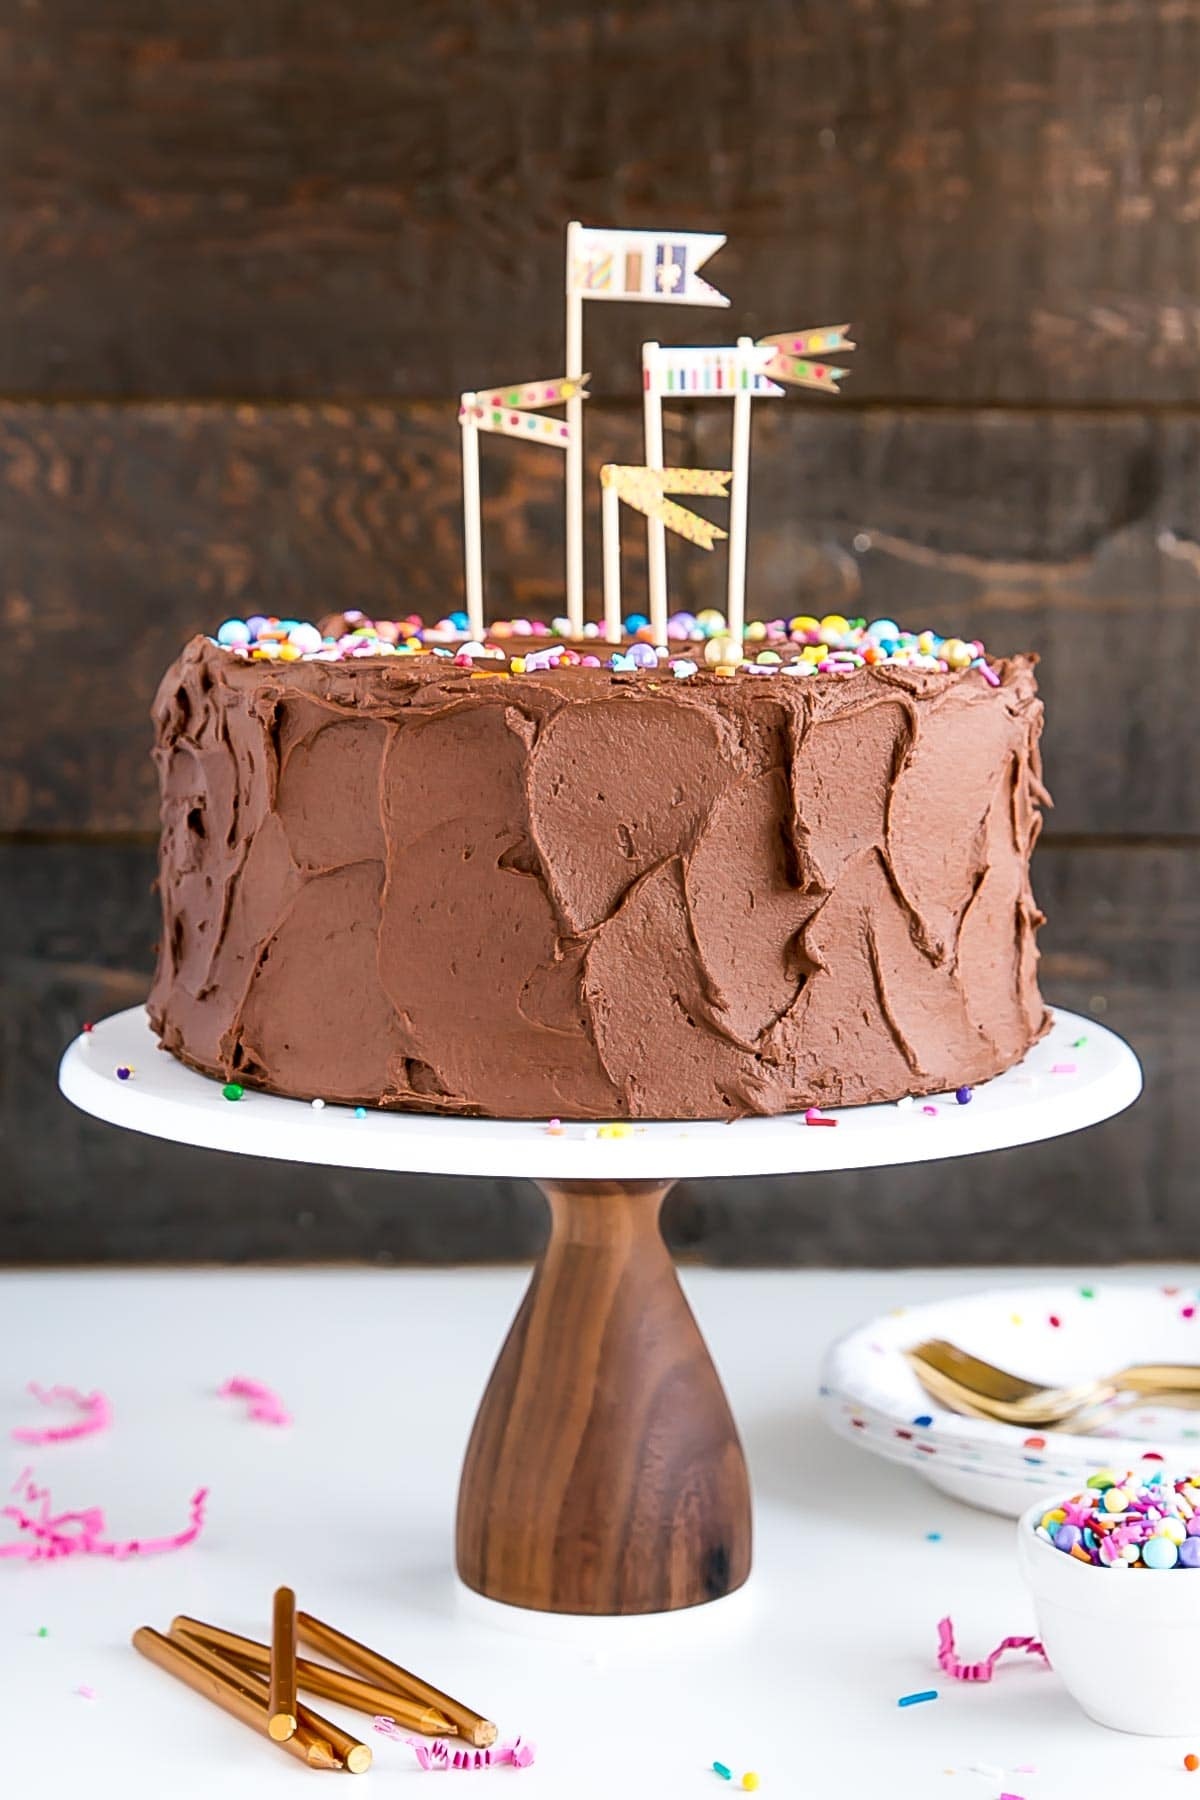 The Ultimate Birthday Cake Recipe A Classic Yellow With Rich Chocolate Frosting And Colorful Sprinkles Perfect Flashback To Your Childhood